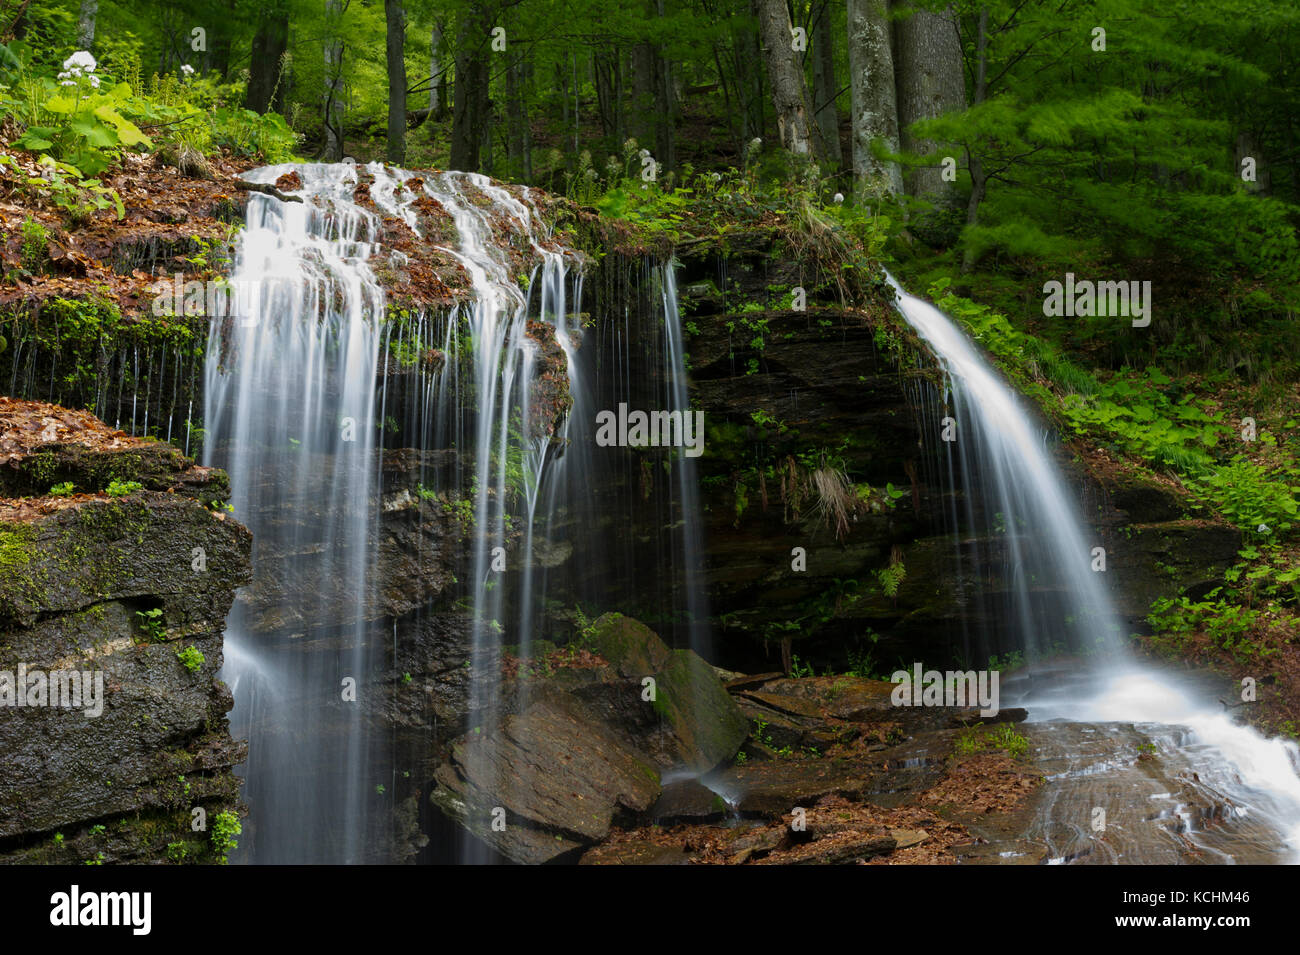 Domogled National Park / Romania - Waterfall in the vast primeval forest in Iauna Craiove UNESCO World Nature Heritage - Stock Image